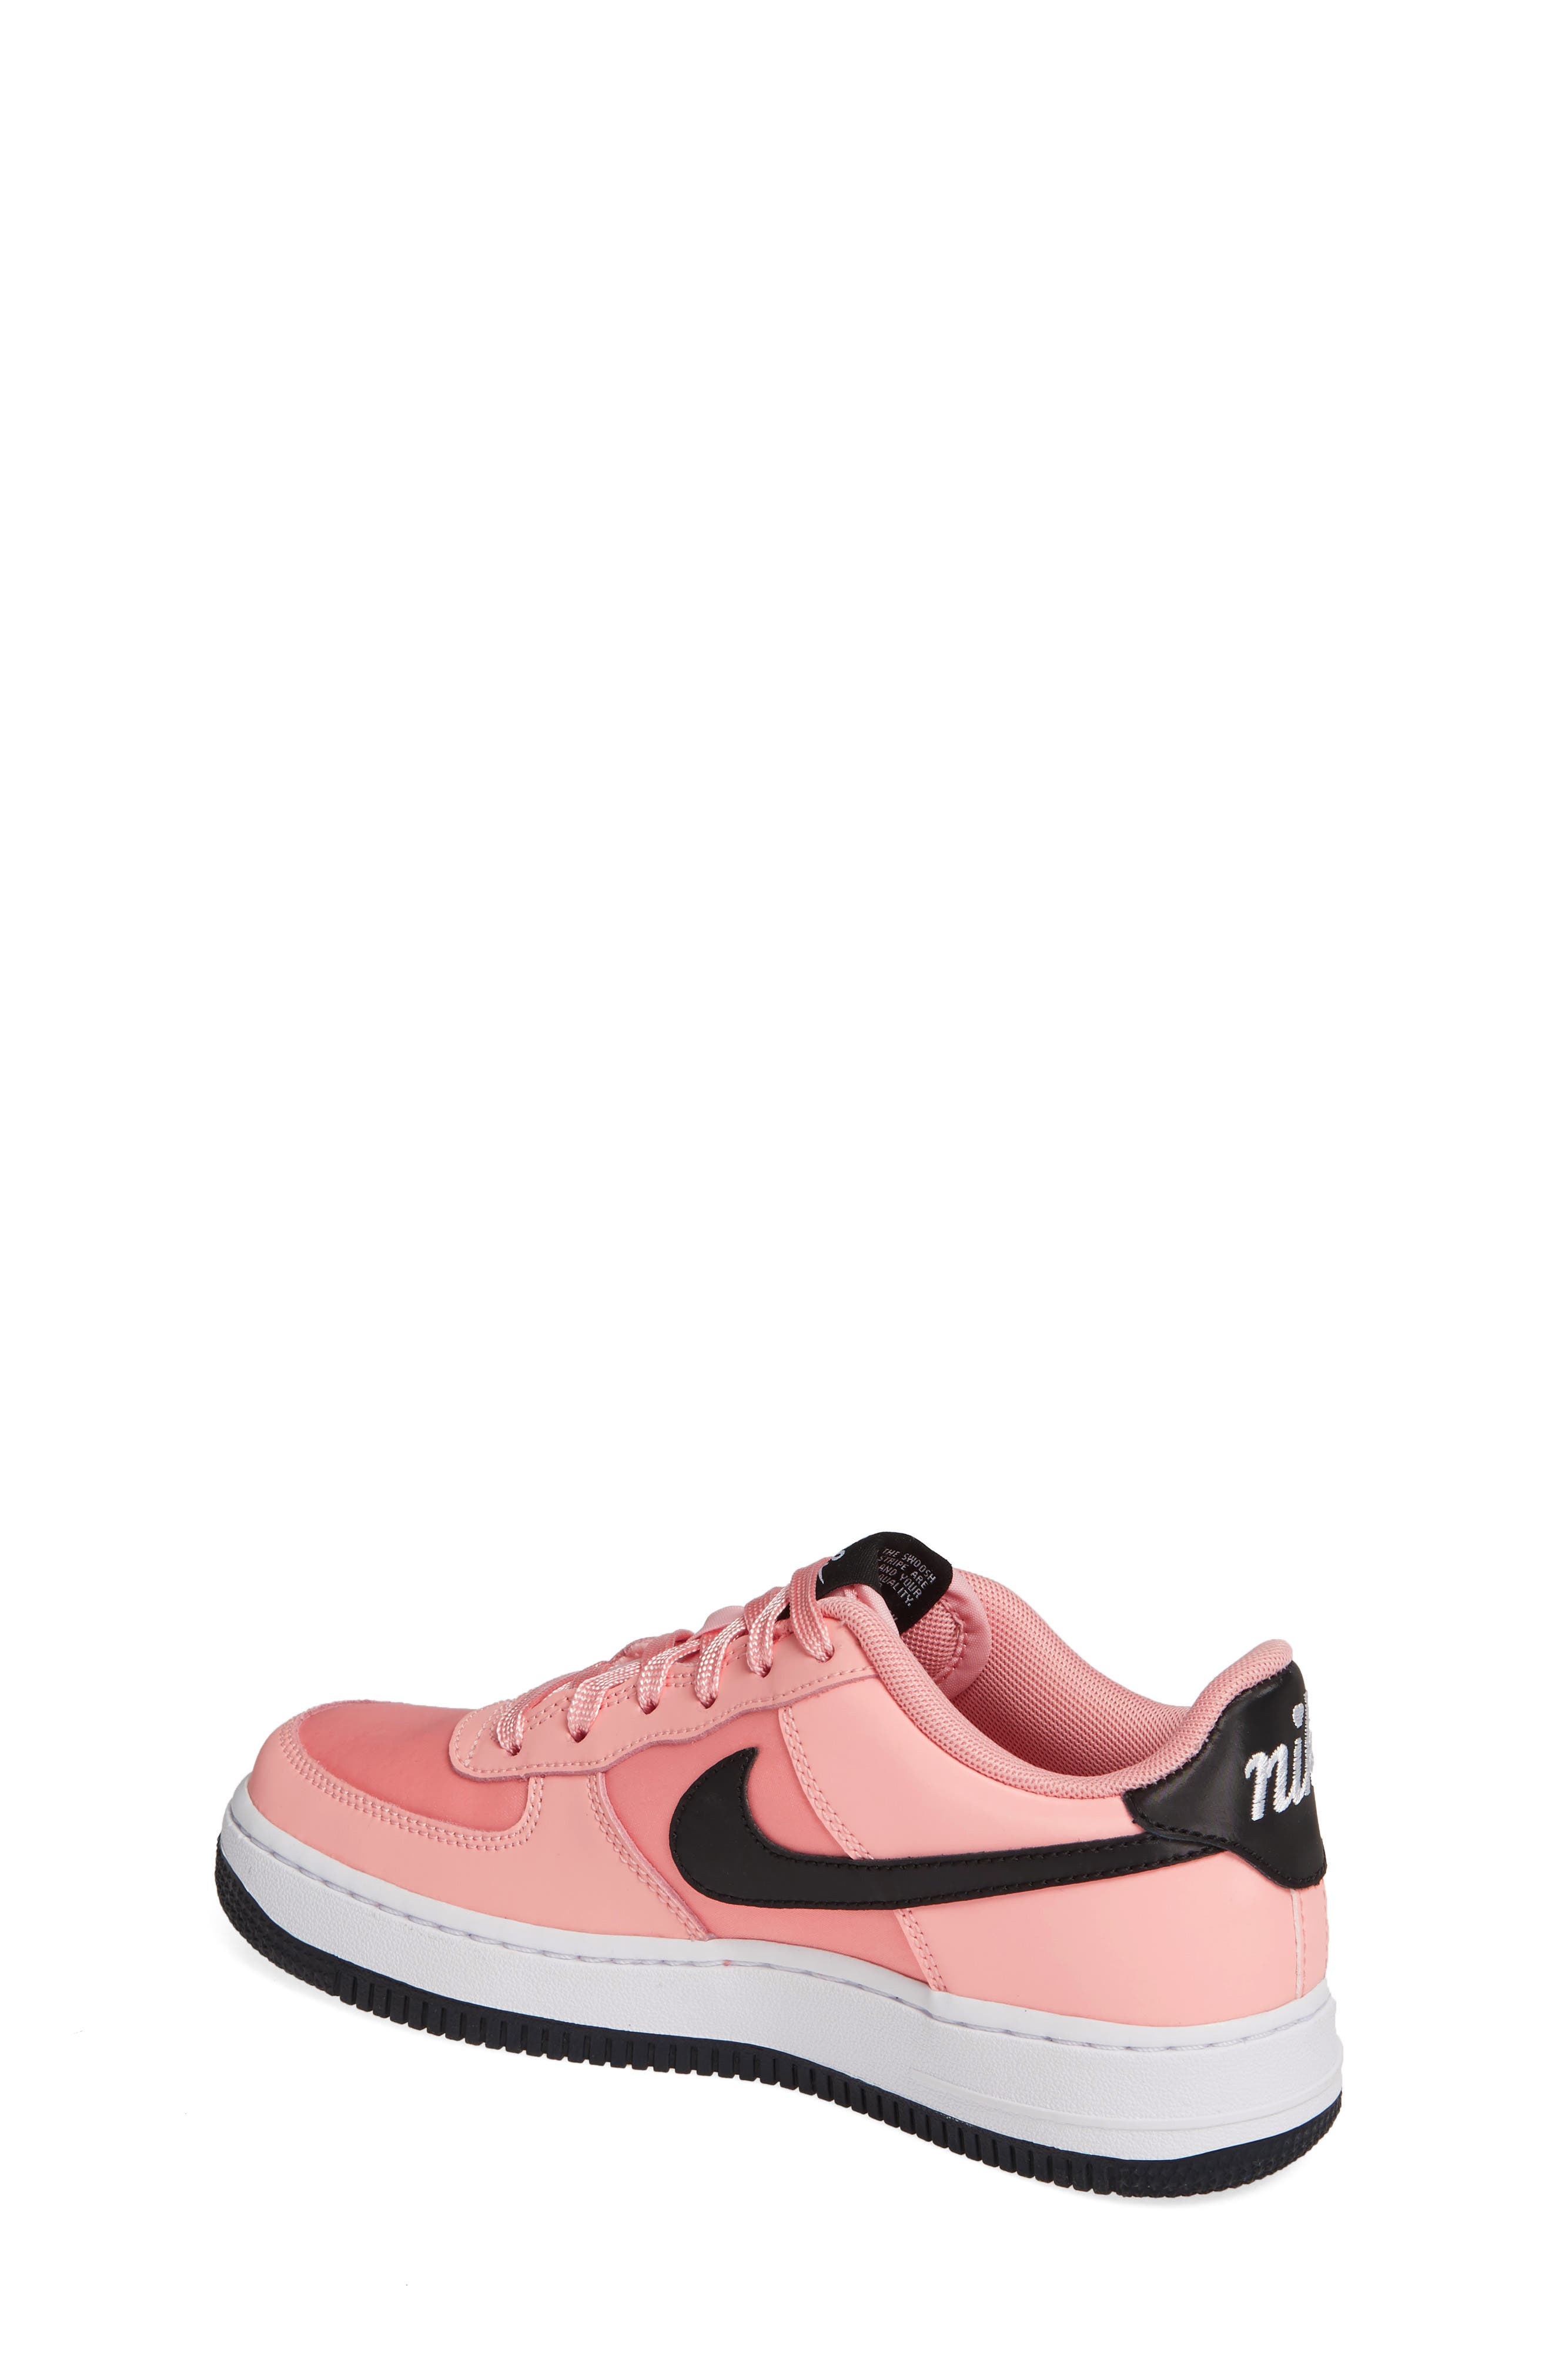 Air Force 1 VDAY Sneaker,                             Alternate thumbnail 2, color,                             BLEACHED CORAL/ BLACK-WHITE